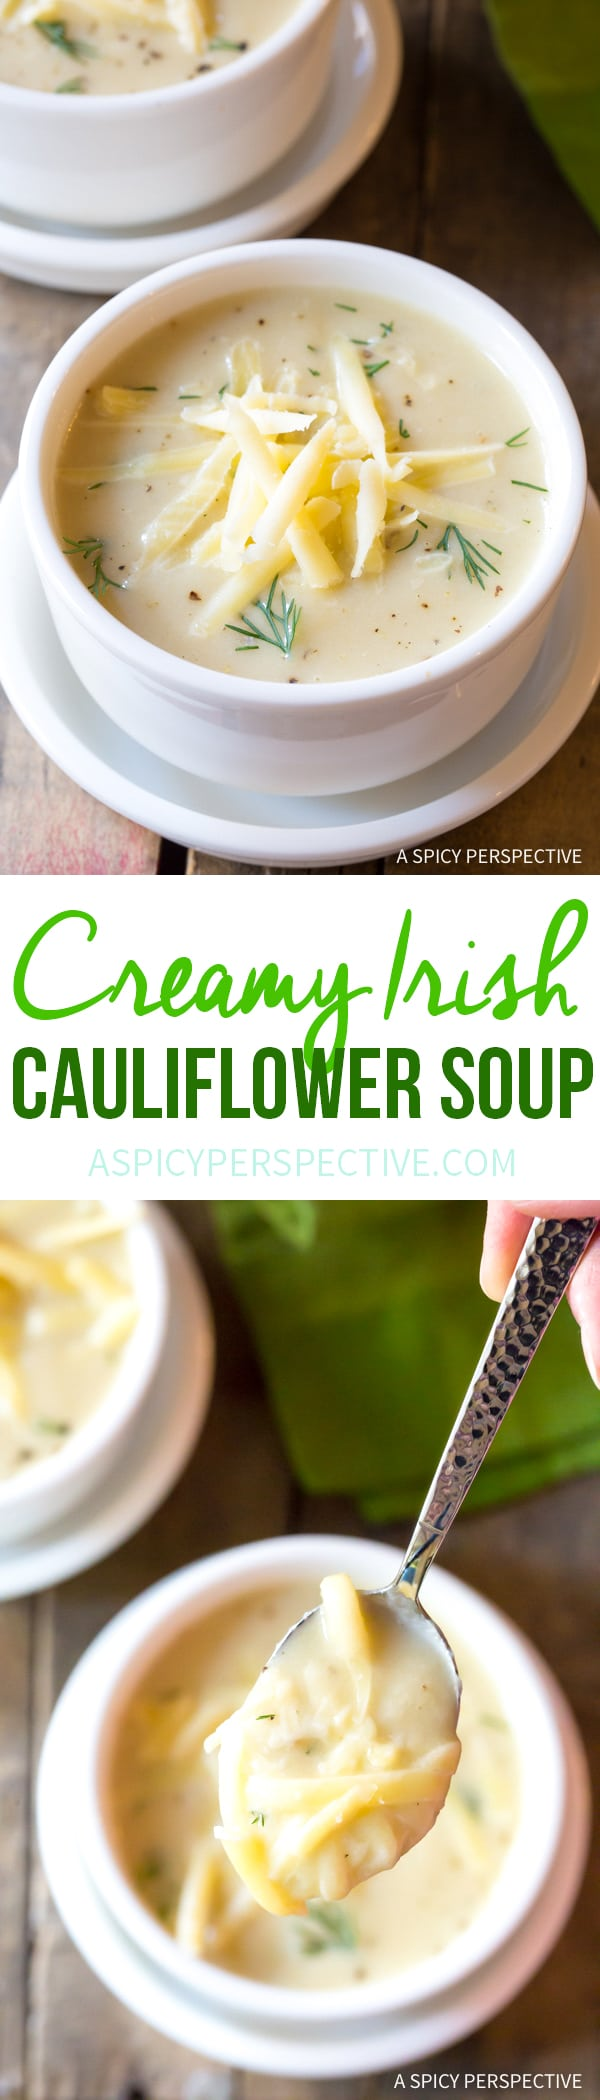 Irresistible Irish Creamy Cauliflower Soup Recipe for Saint Patrick's Day!